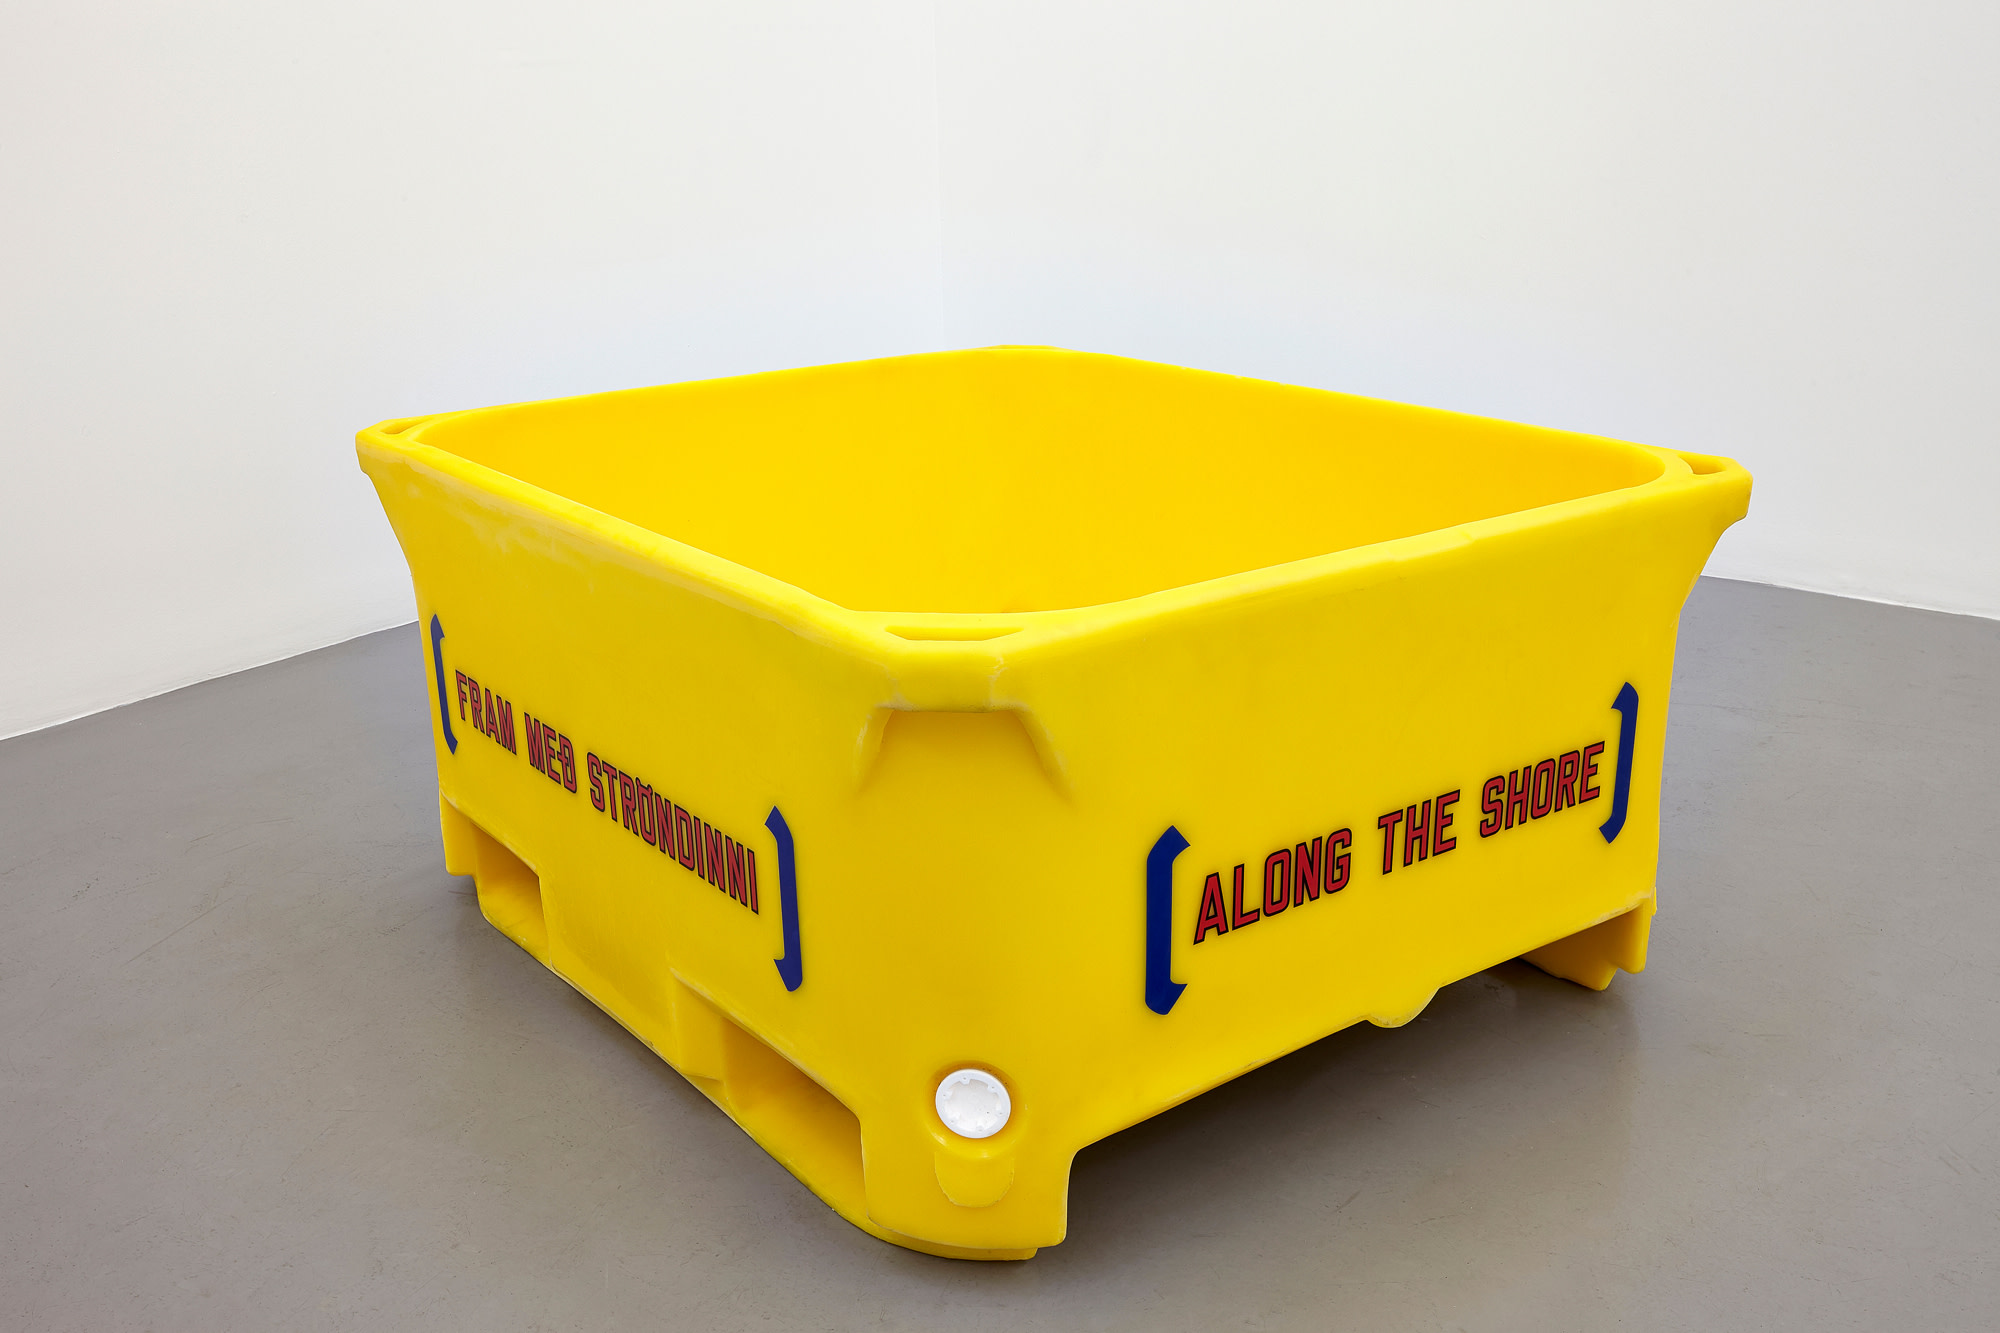 <span class=&#34;link fancybox-details-link&#34;><a href=&#34;/artists/44-lawrence-weiner/works/13665/&#34;>View Detail Page</a></span><div class=&#34;artist&#34;><strong>LAWRENCE WEINER</strong></div> <div class=&#34;title&#34;><em>Along the Shore</em>, 2014</div> <div class=&#34;medium&#34;>polyethylene fish tub</div> <div class=&#34;dimensions&#34;>58 x 122 x 103 cm<br /> </div> <div class=&#34;edition_details&#34;></div>